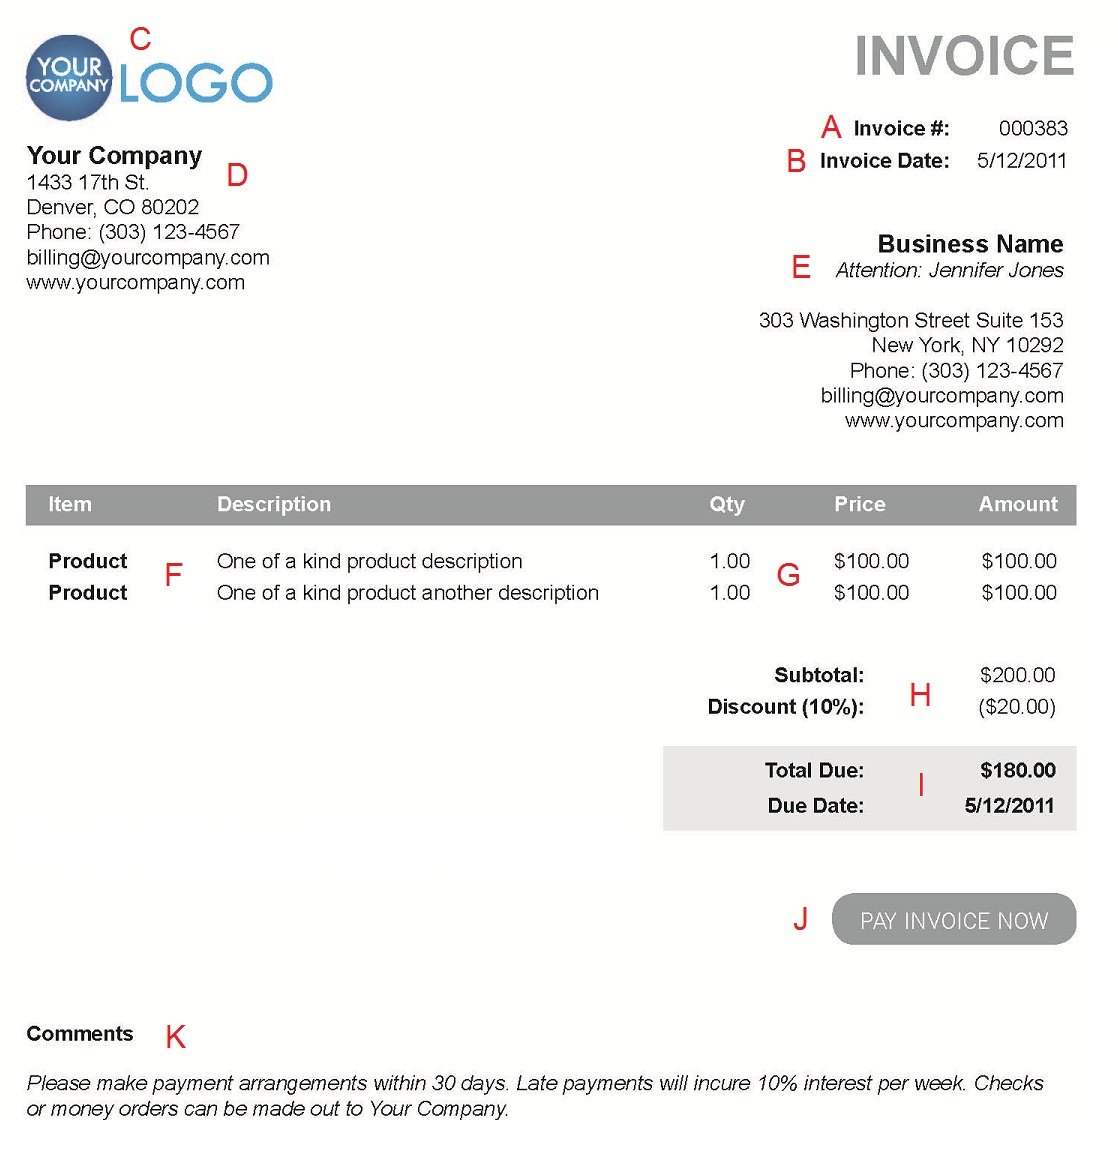 Opposenewapstandardsus  Personable The  Different Sections Of An Electronic Payment Invoice With Luxury A  With Agreeable Google Docs Template Invoice Also How To Write An Invoice Letter In Addition Invoice Date Definition And Download Invoice Template Excel As Well As Illustration Invoice Additionally Printable Invoice Forms From Paysimplecom With Opposenewapstandardsus  Luxury The  Different Sections Of An Electronic Payment Invoice With Agreeable A  And Personable Google Docs Template Invoice Also How To Write An Invoice Letter In Addition Invoice Date Definition From Paysimplecom